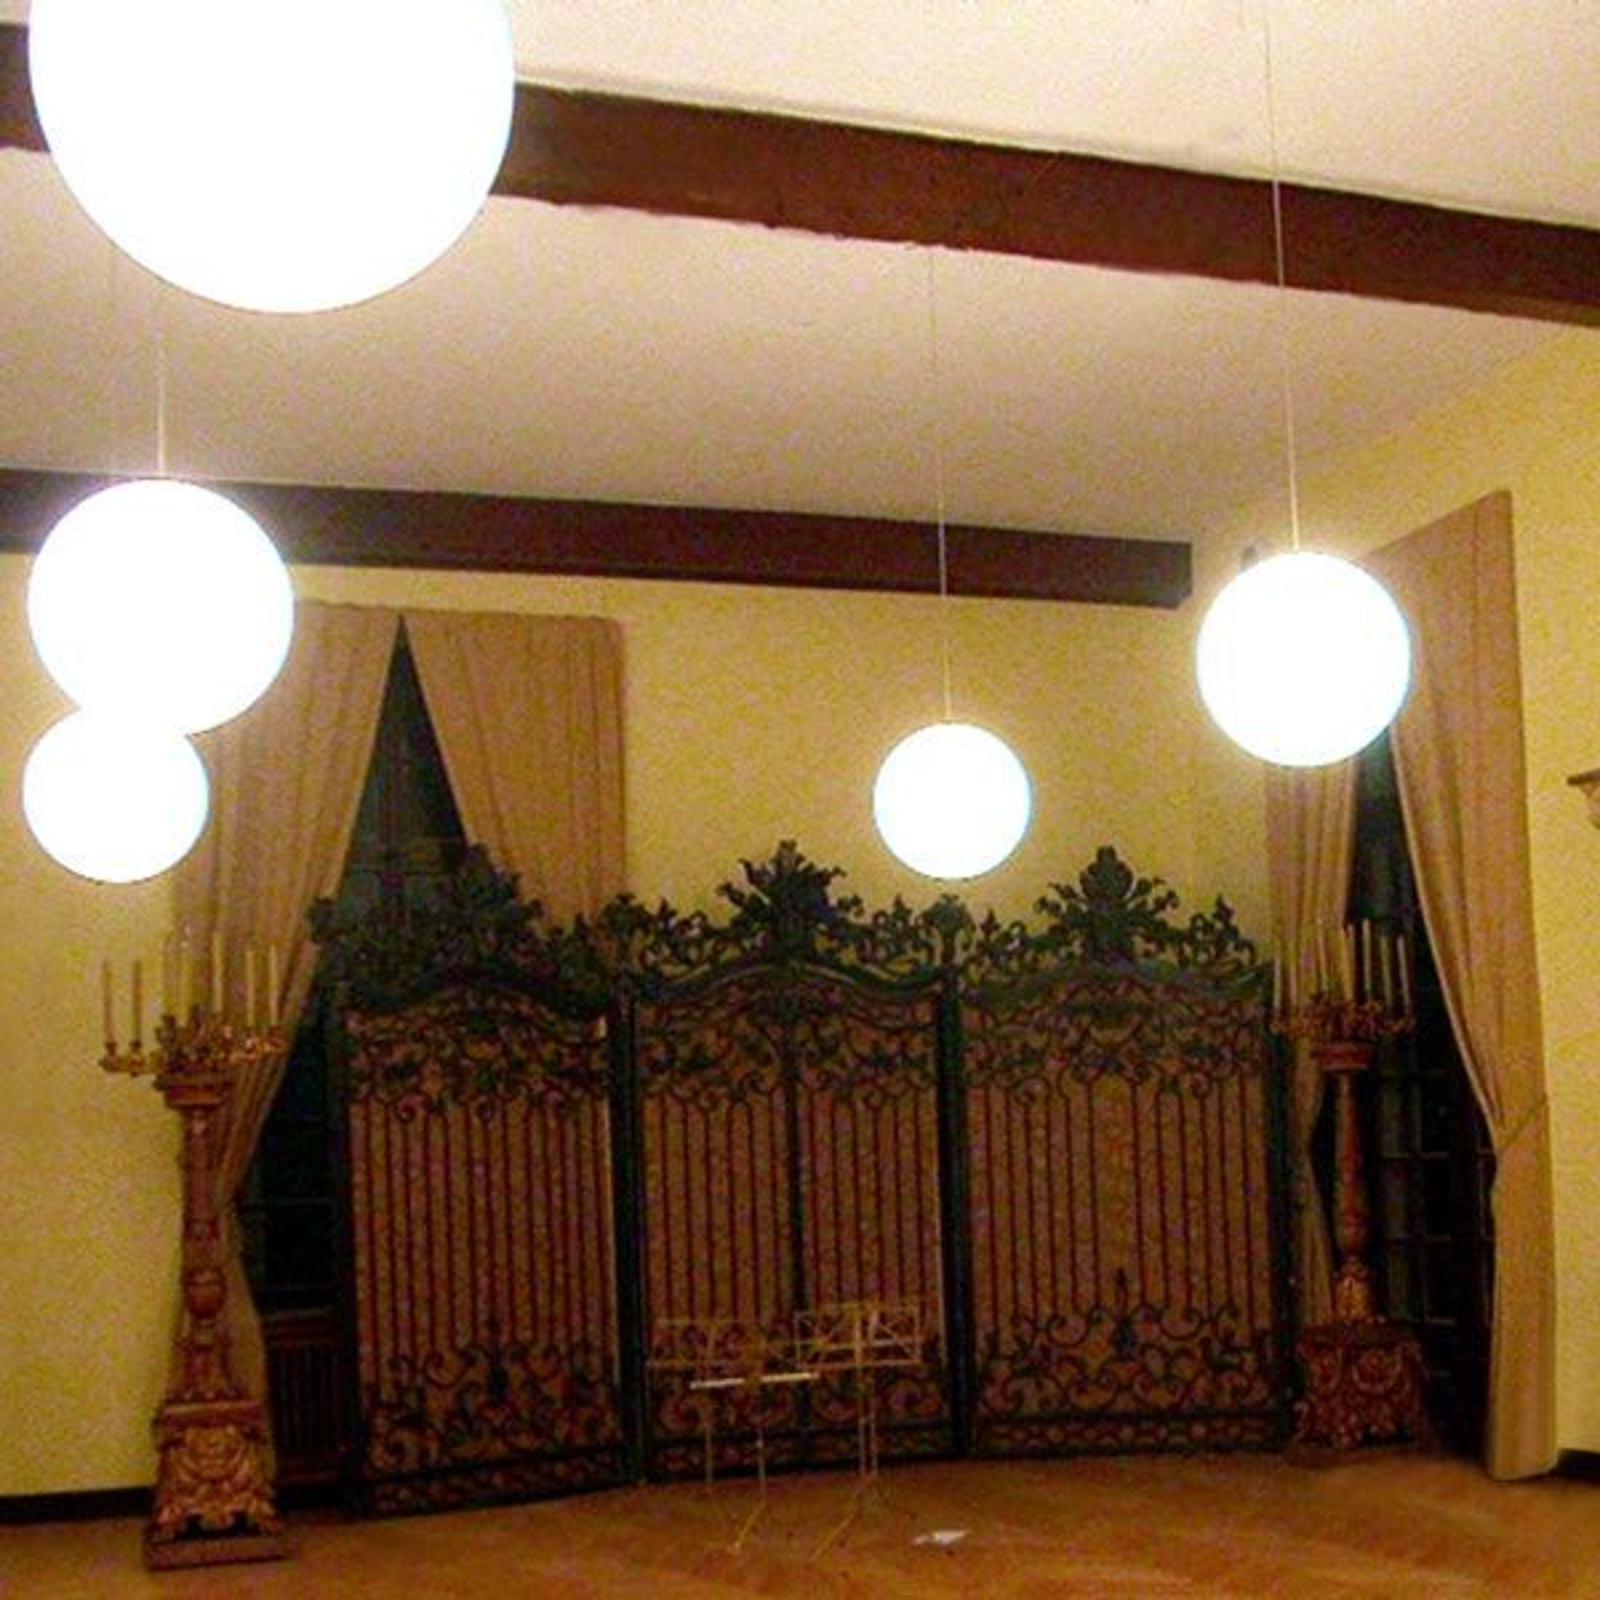 Exquisite Snowball Pendant Lamp, White, for Inside_3050046_1